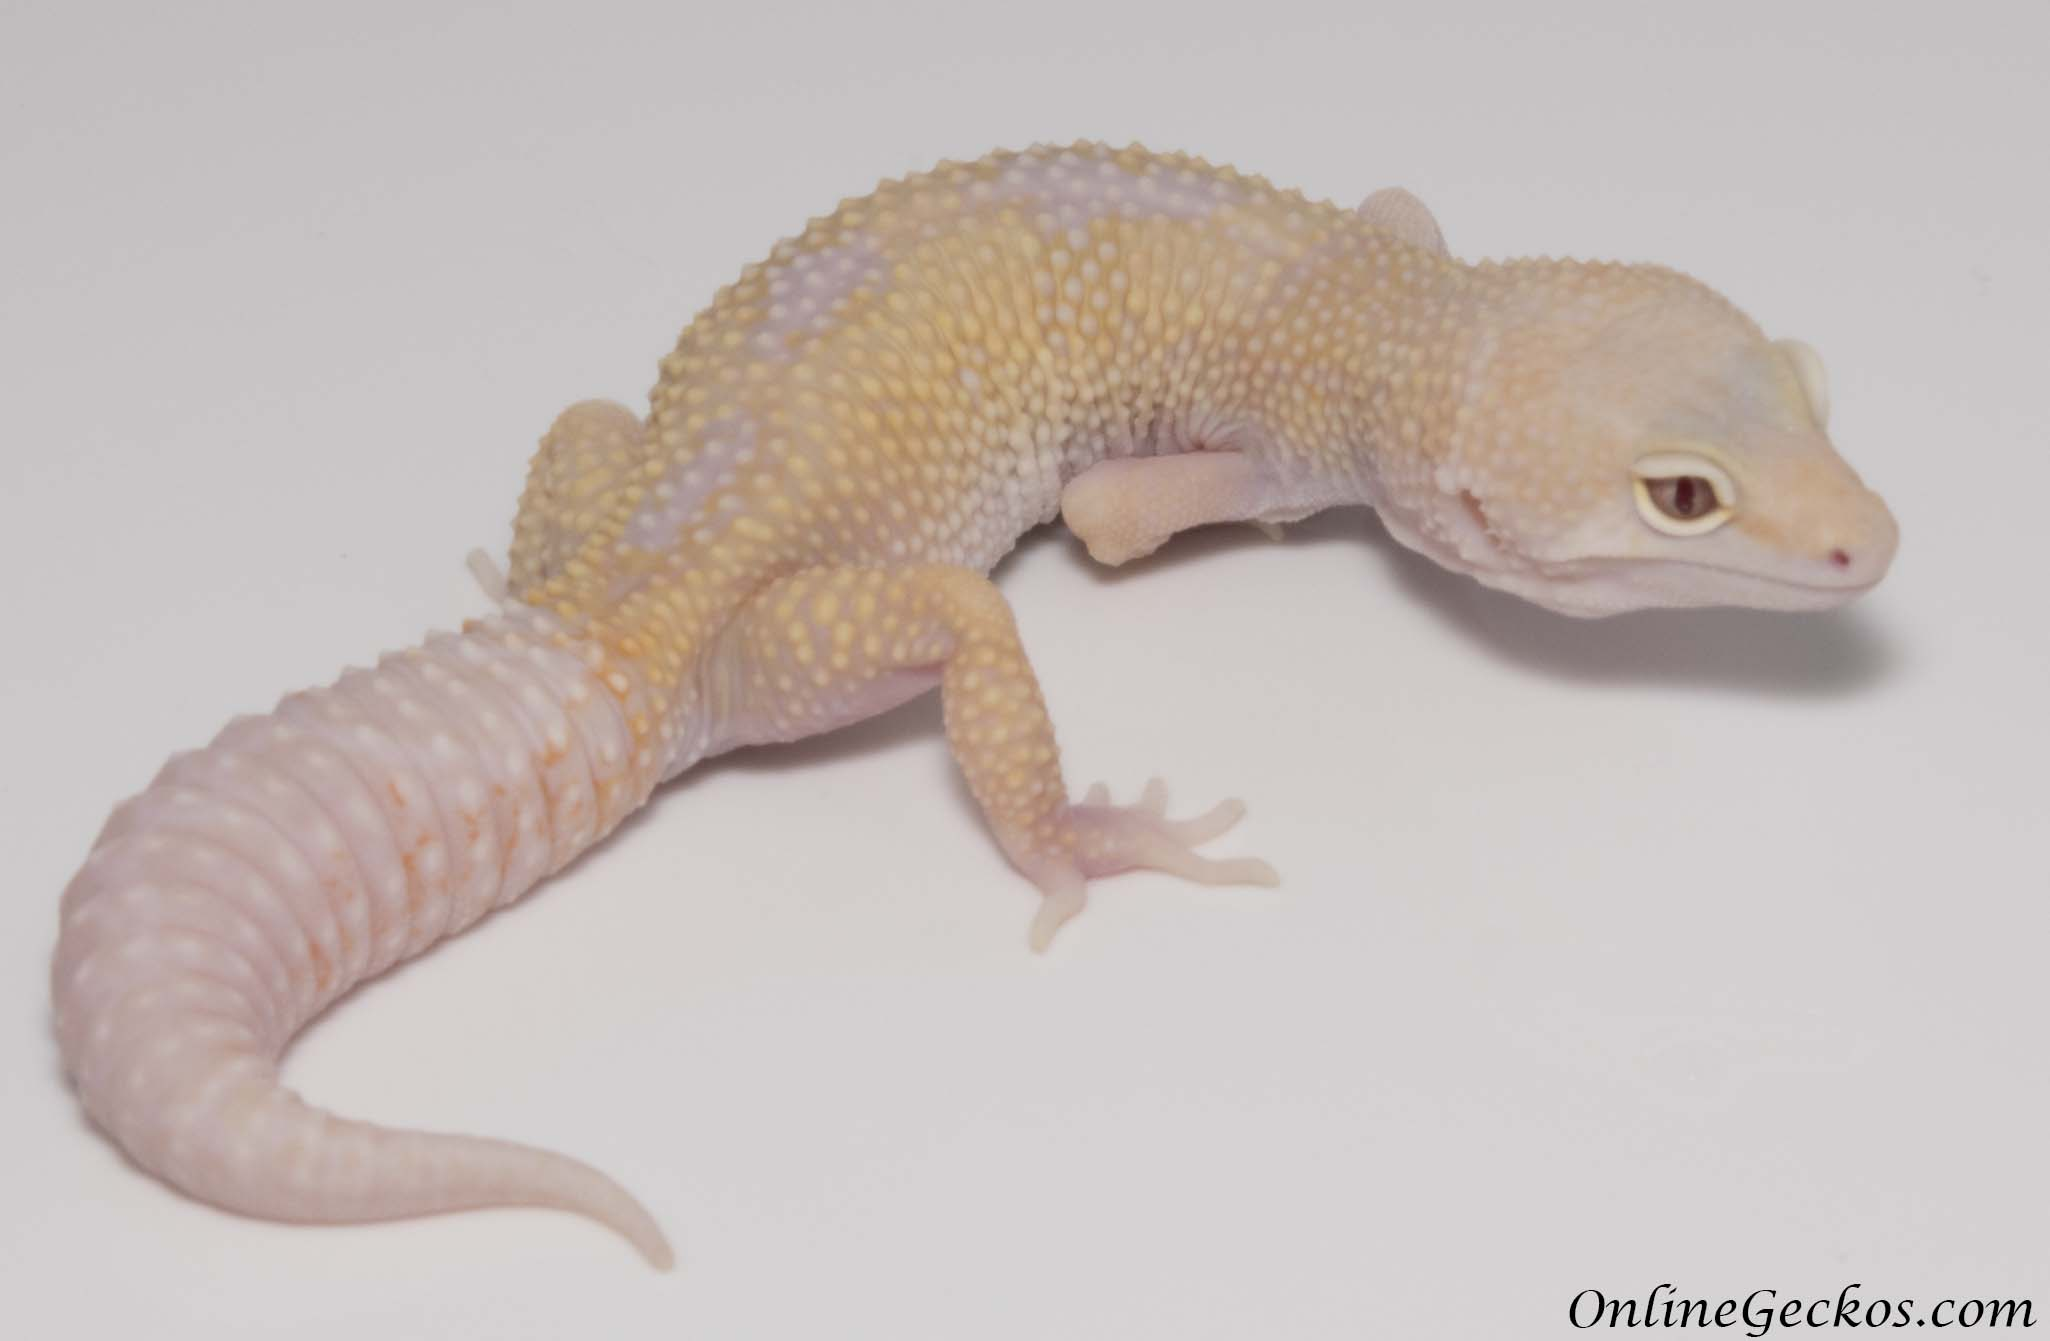 Crested Gecko Morph Colors Morphs And Traits